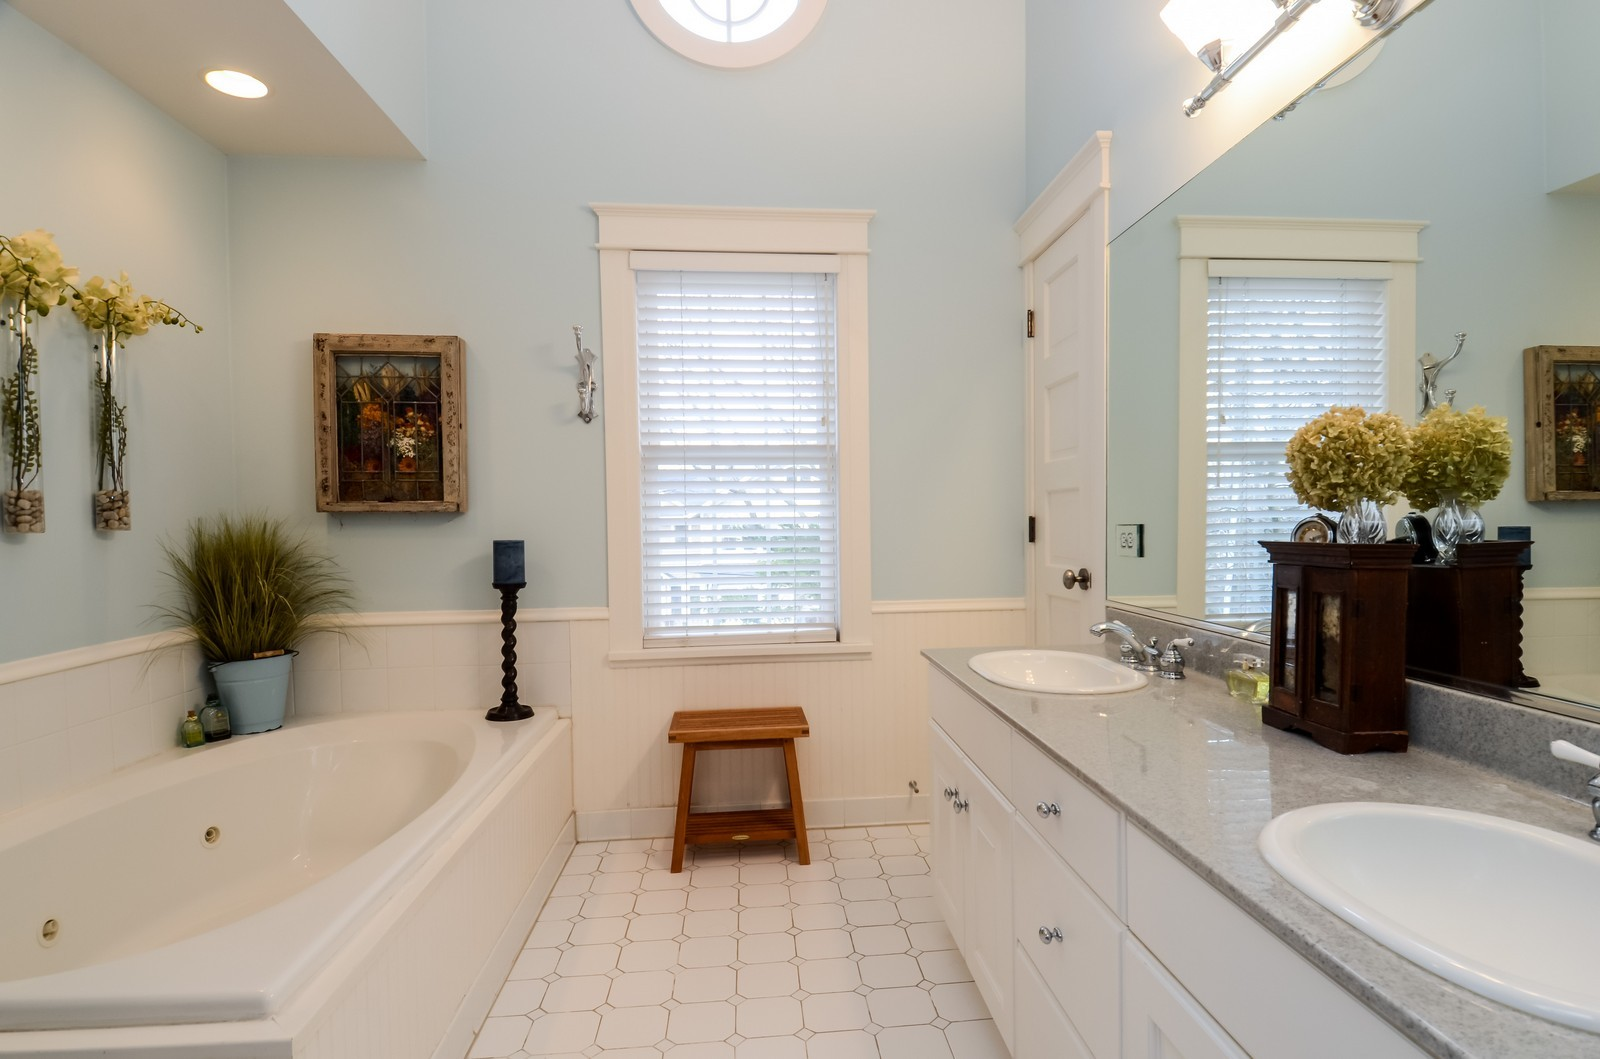 Real Estate Photography - 406 S Grant St, Hinsdale, IL, 60521 - Master Bathroom